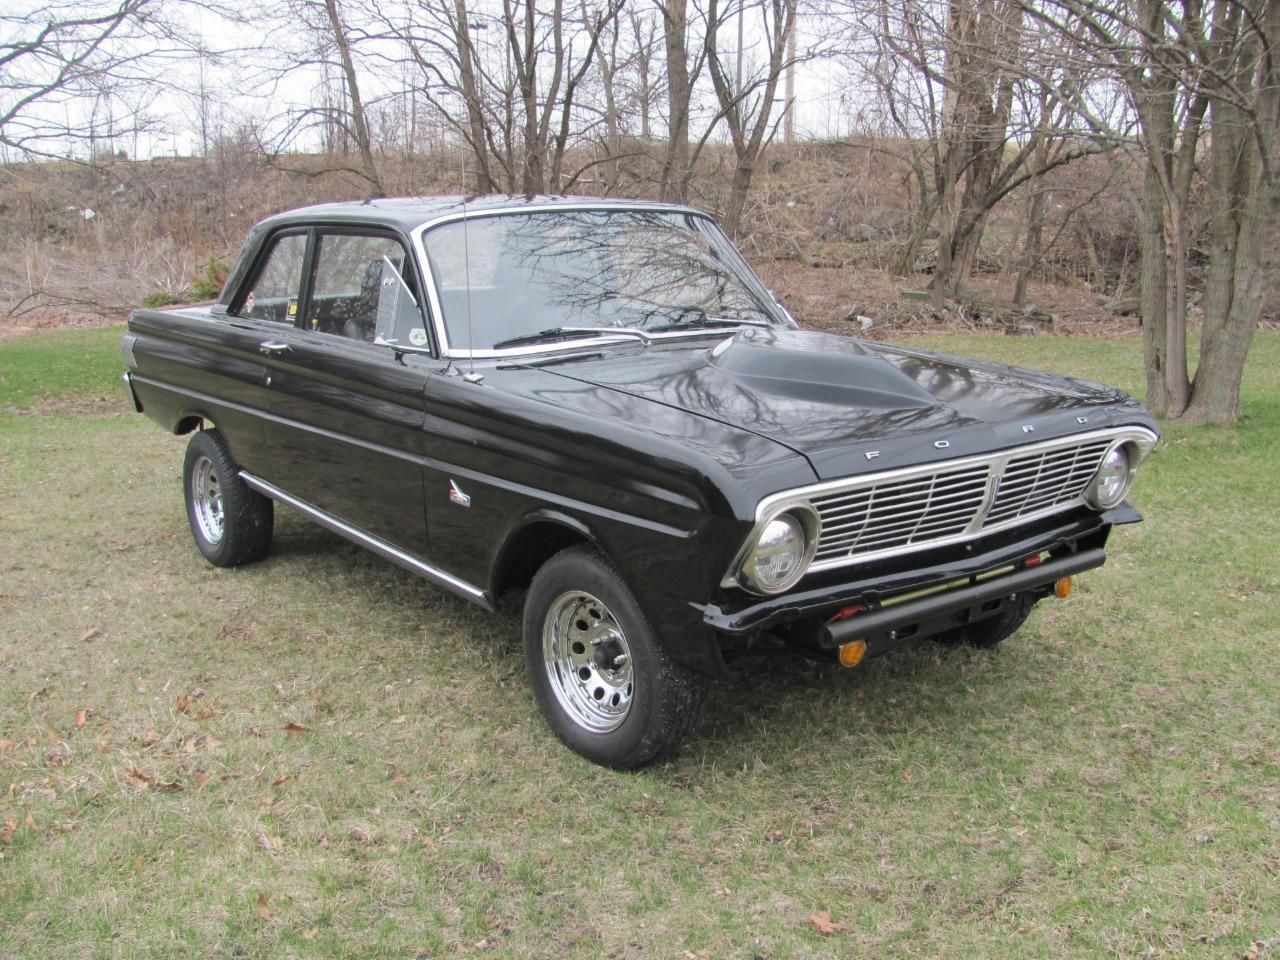 1965 Ford Falcon Project Cars For Sale